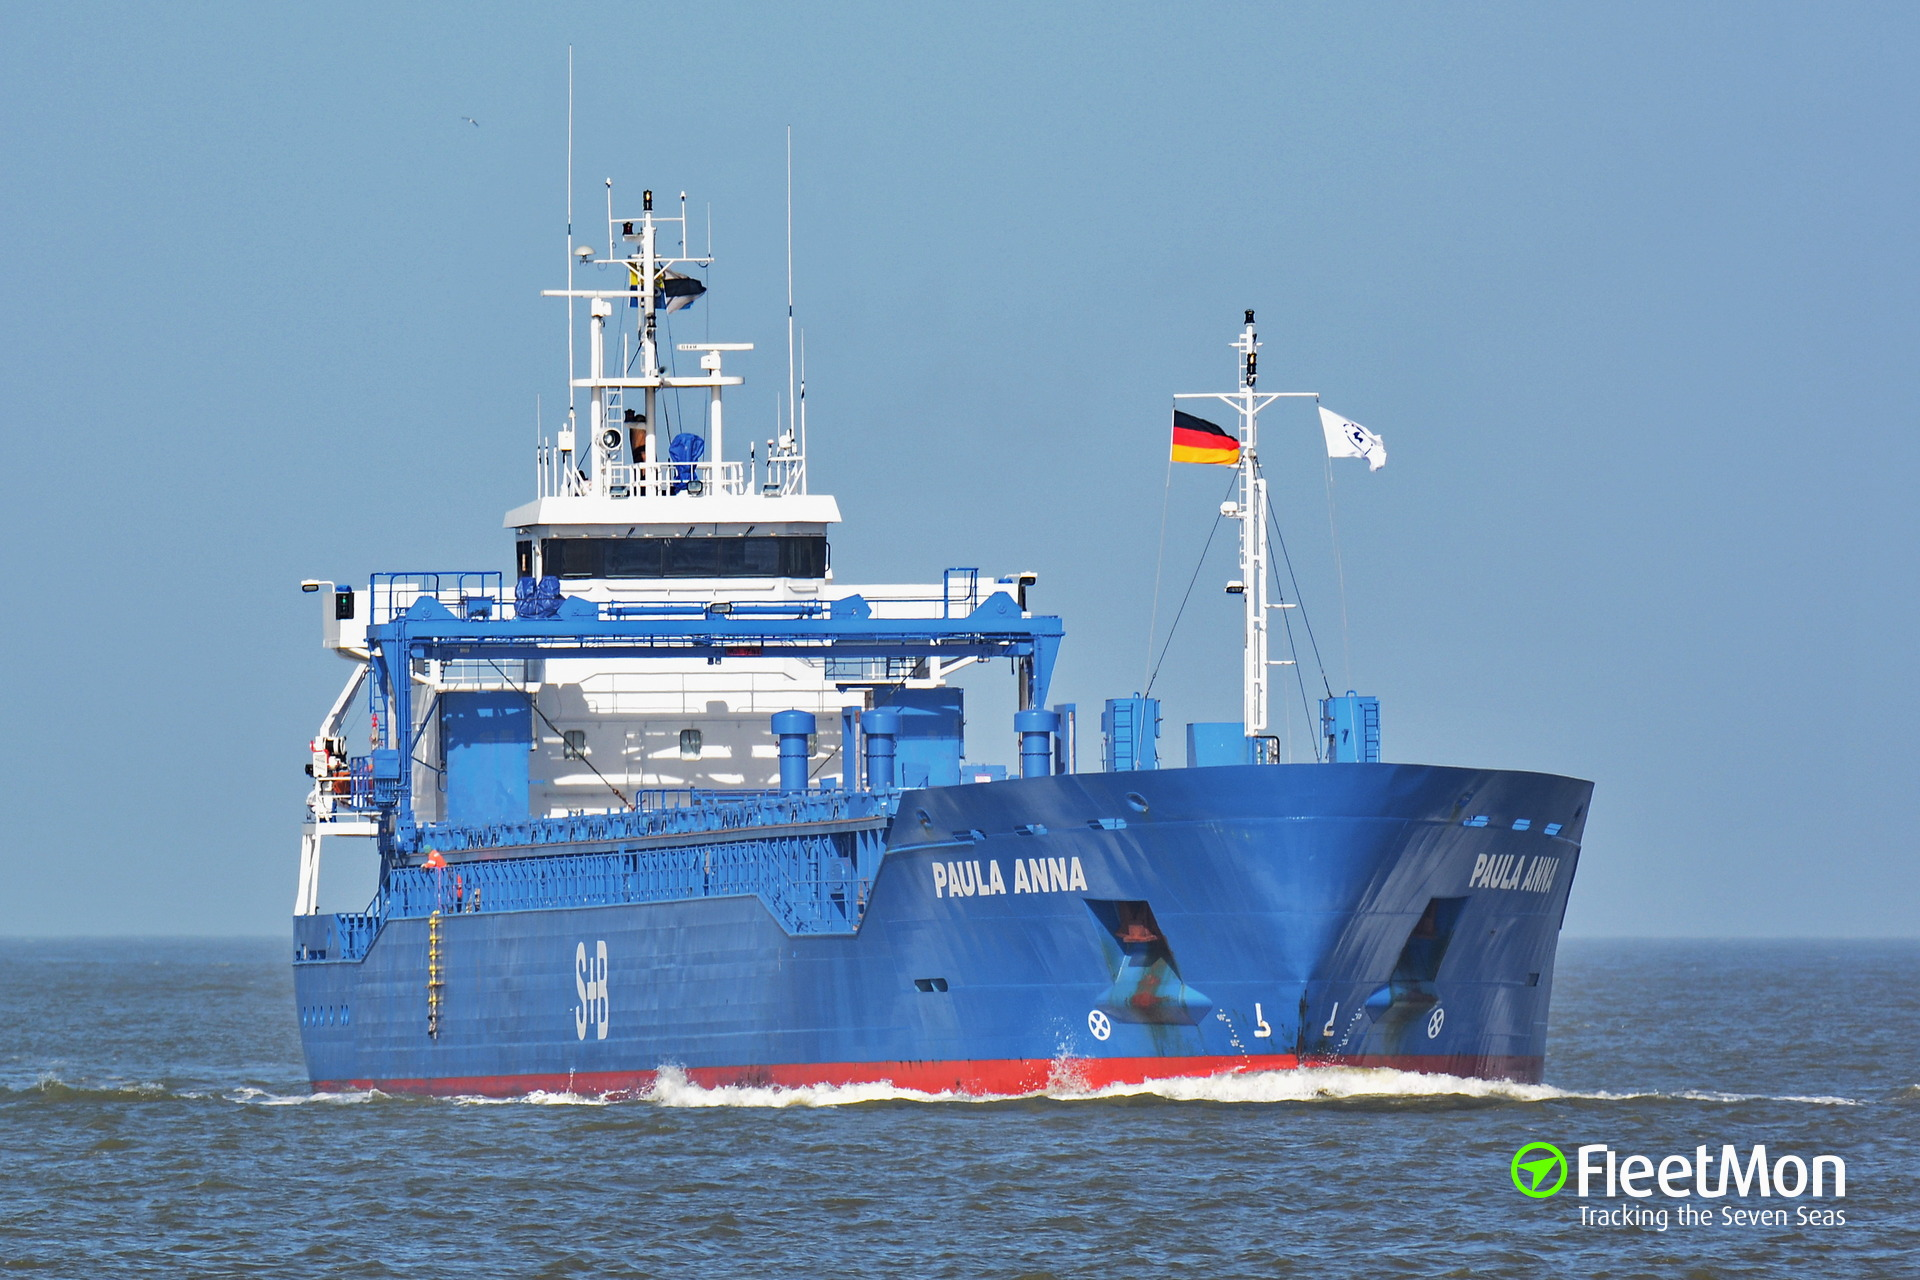 EMPIRE vs. PAULA ANNA, Kiel Canal